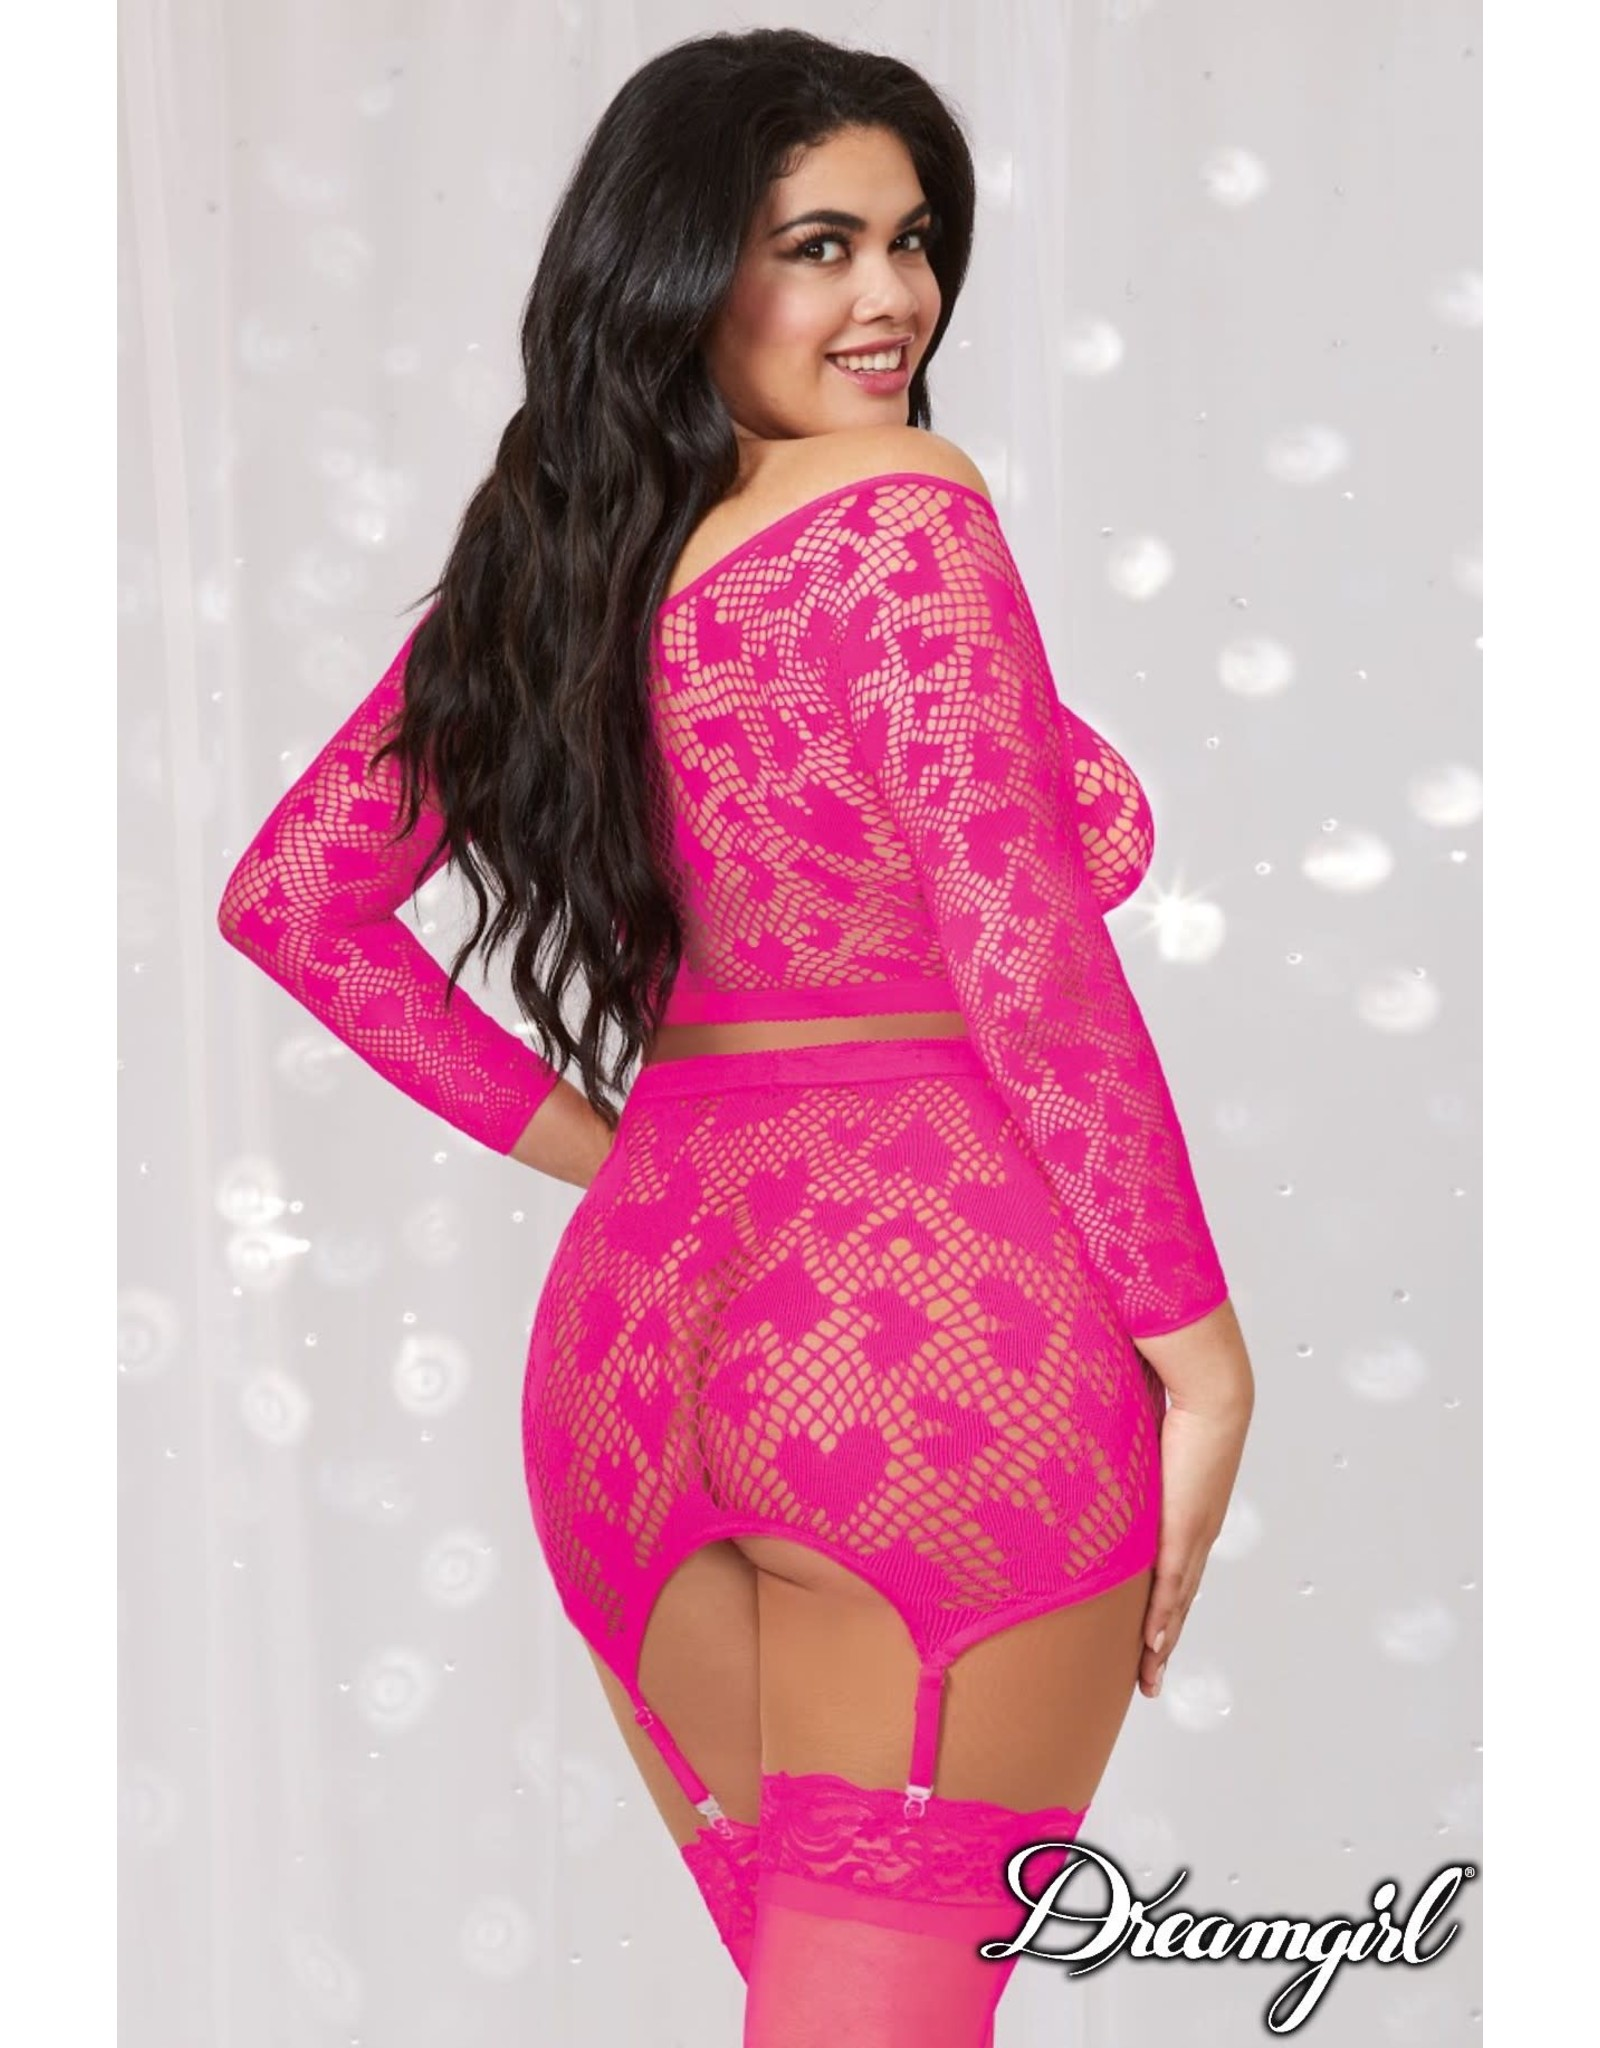 DREAMGIRL LINGERIE DREAMGIRL - 2PC SET - HOT PINK - ONE SIZE QUEEN